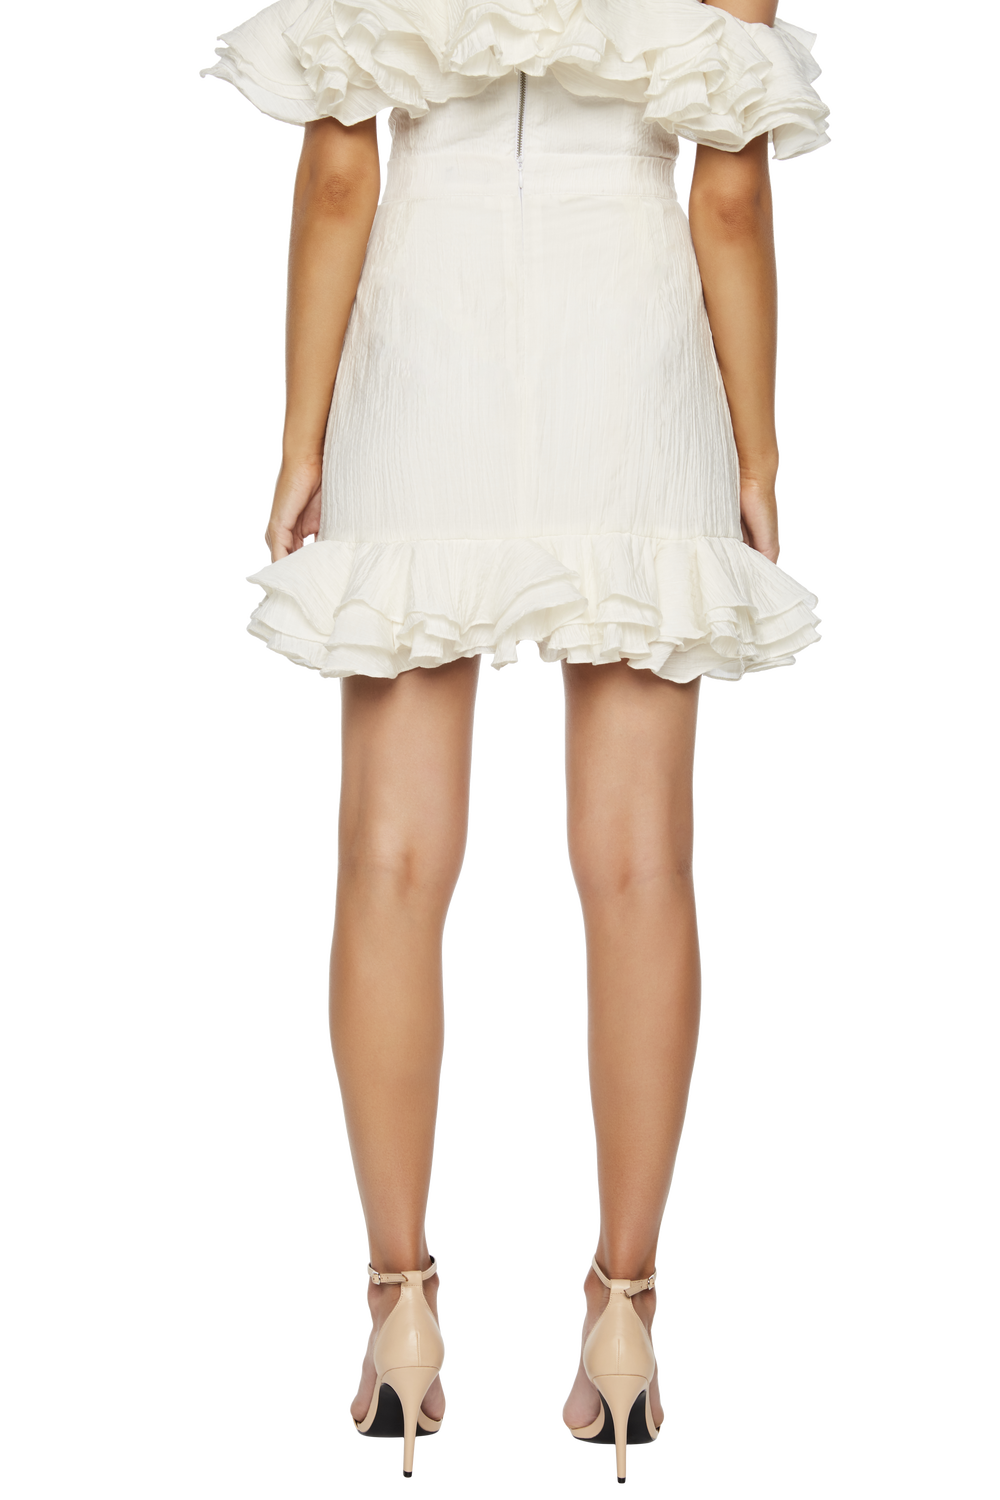 RUFFLE SKIRT in colour CLOUD DANCER